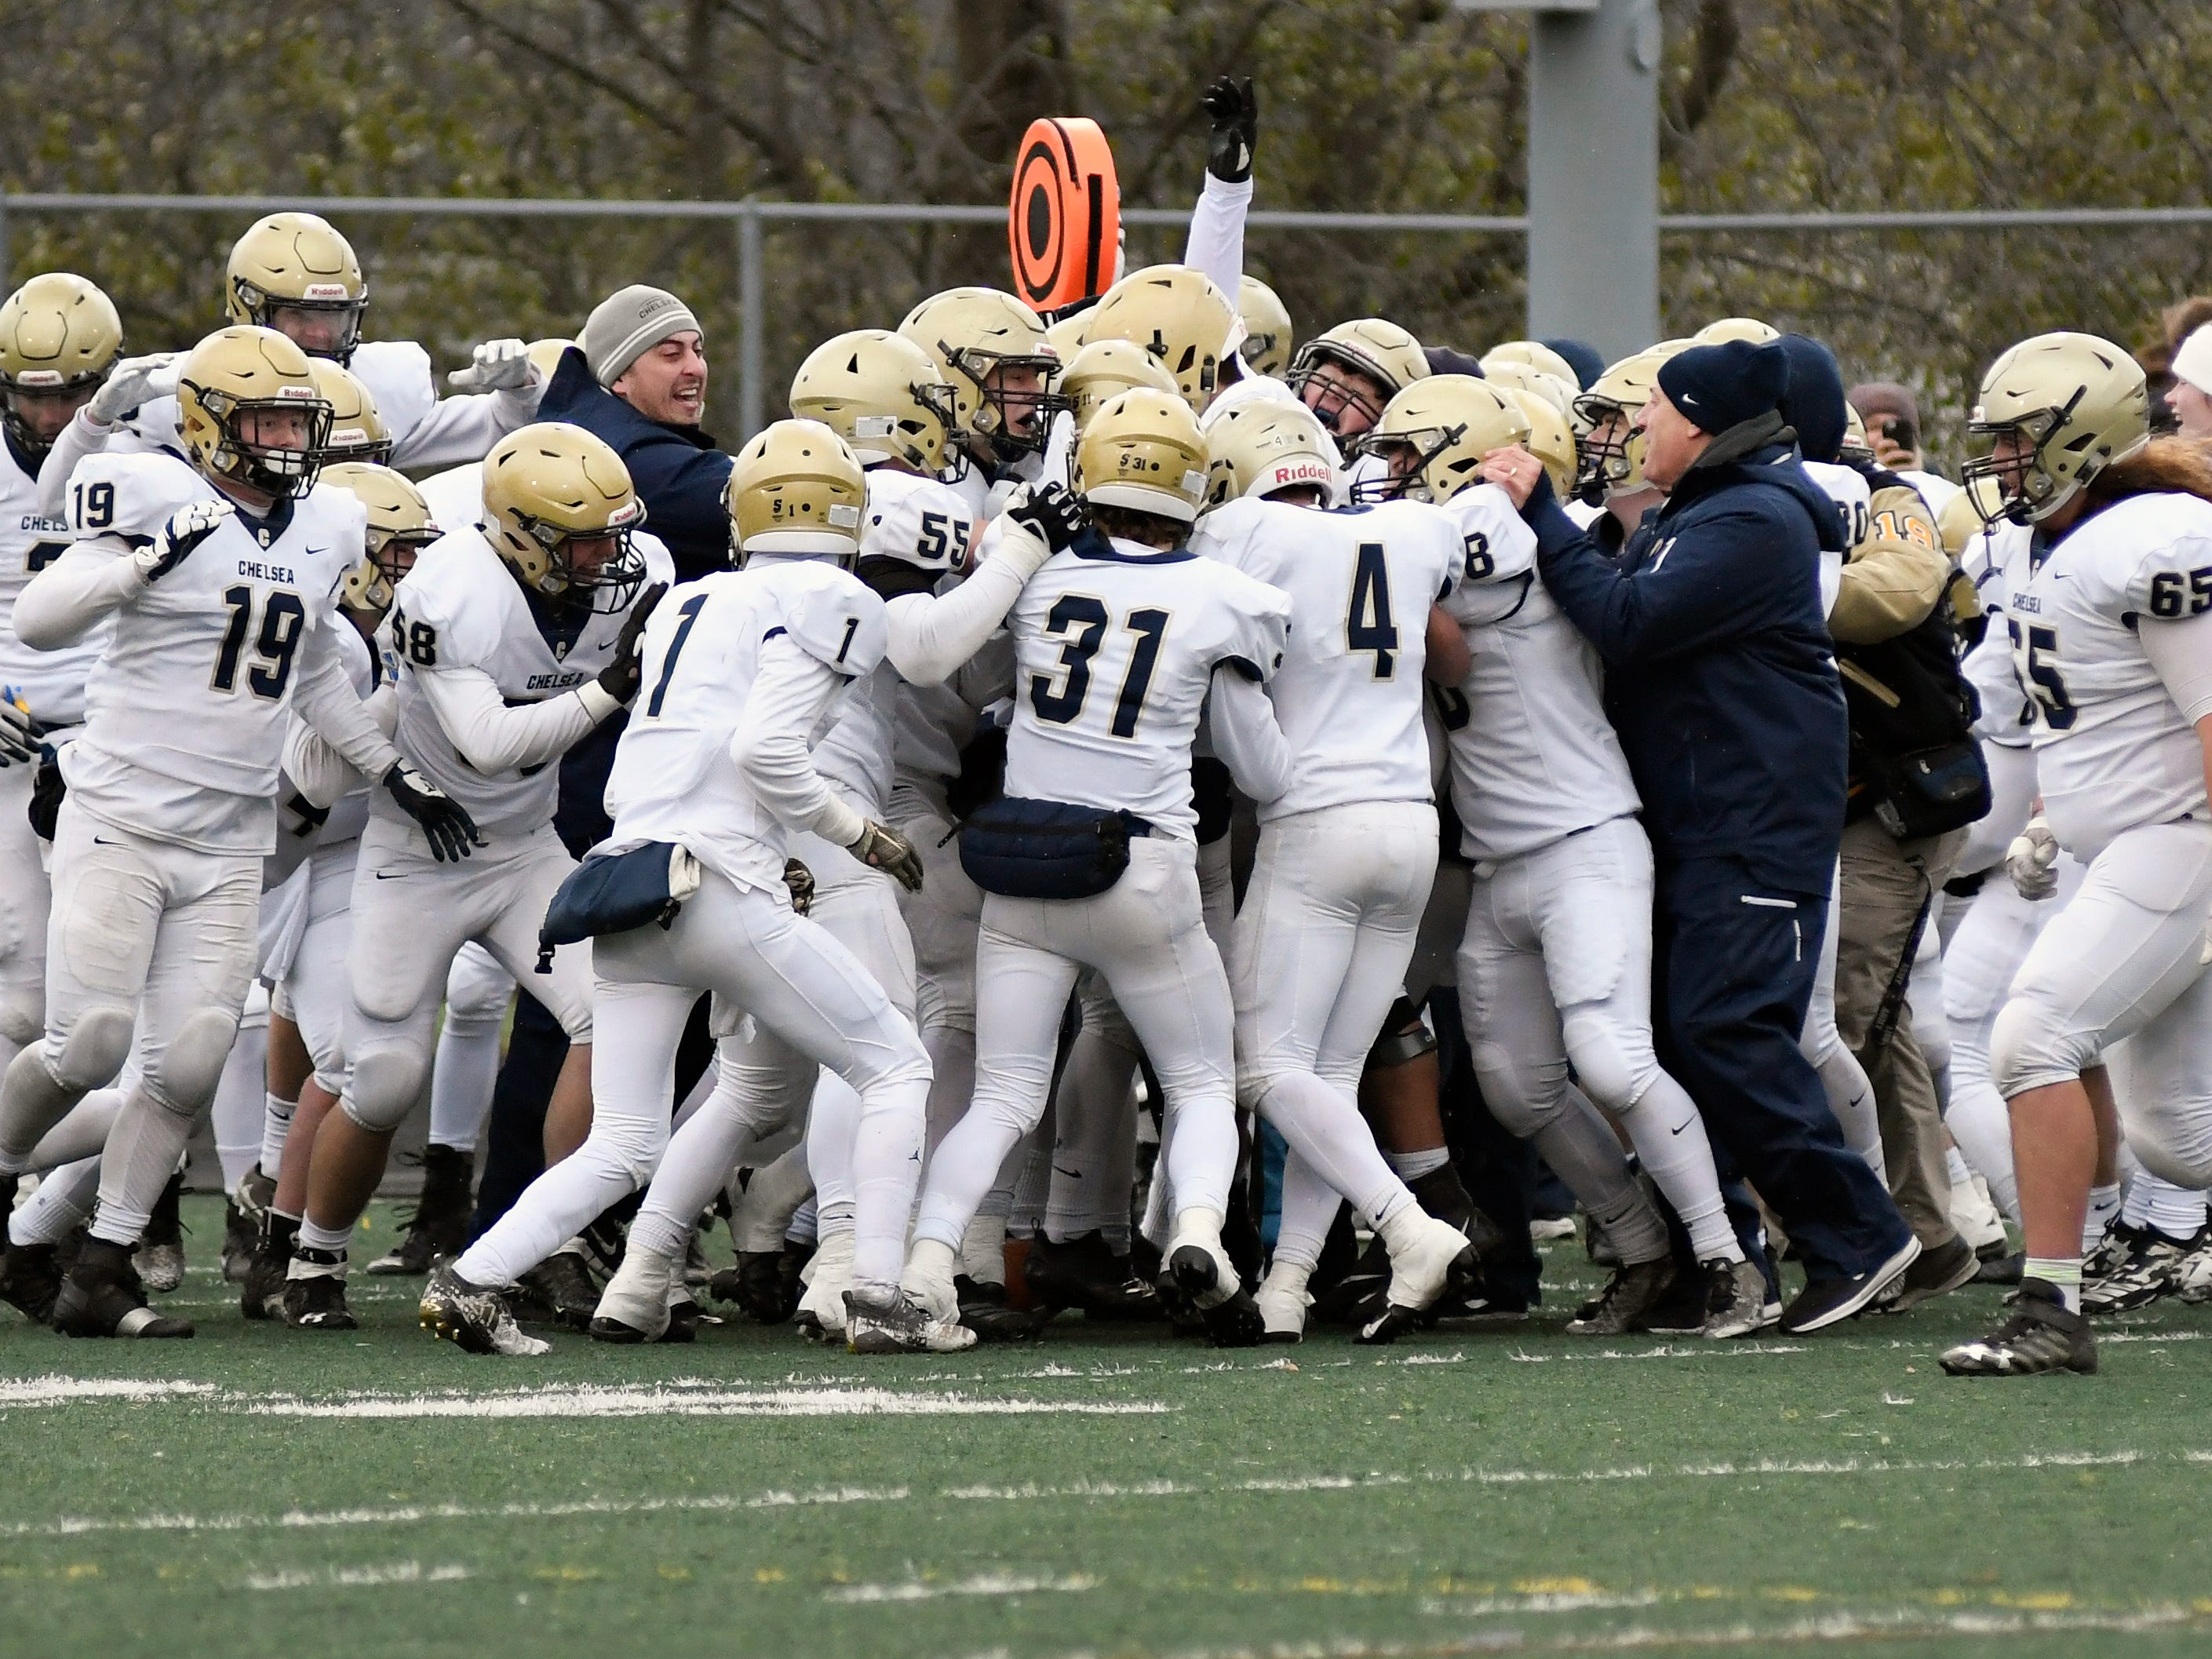 Chelsea free safety Joe Taylor is mobbed by teammates after intercepting a Farmington Hills Harris pass attempt with less than a minute left in the fourth quarter Saturday,  in a Division 4 Regional Final.